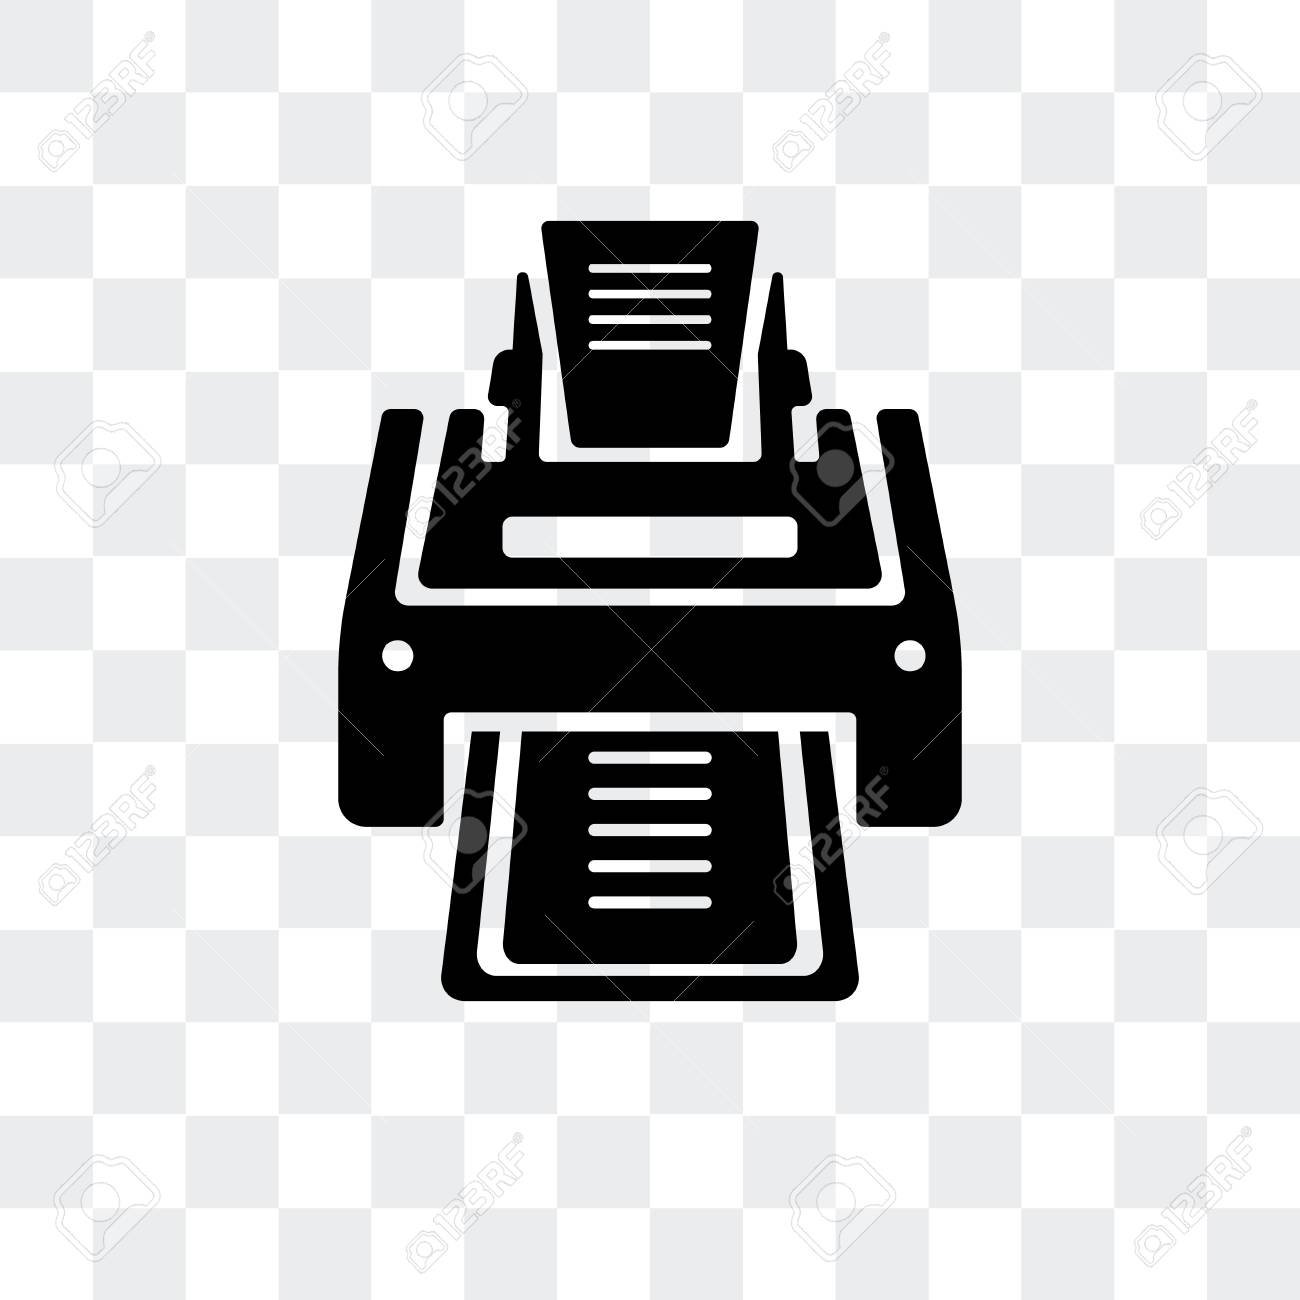 printer vector icon isolated on transparent background printer royalty free cliparts vectors and stock illustration image 107208982 printer vector icon isolated on transparent background printer